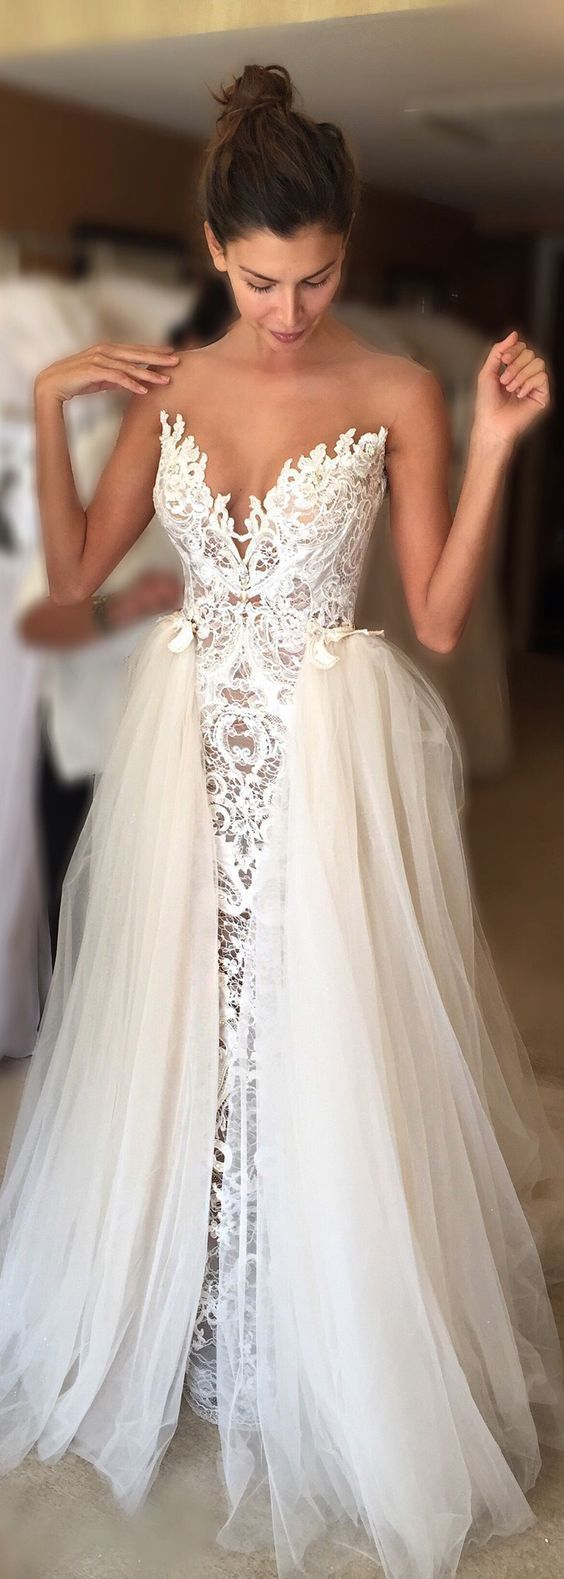 Sweden yuma where to buy dresses online in the philippines hills below